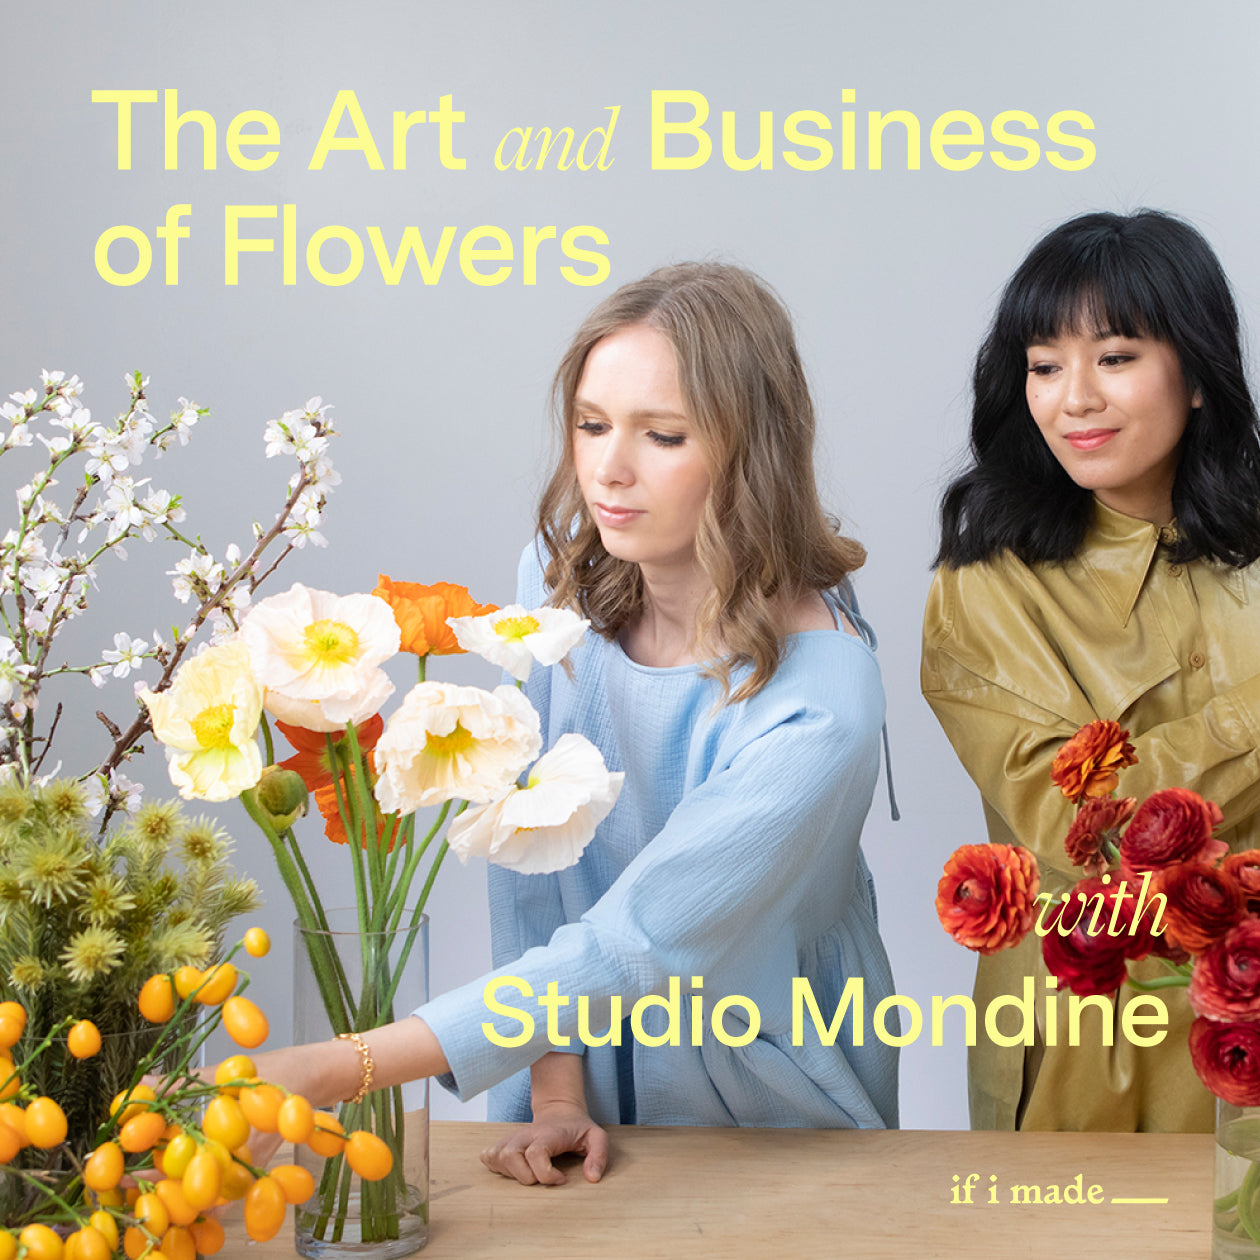 The Art and Business of Flowers with Studio Mondine (SPPJan21) - 13 payments of $99